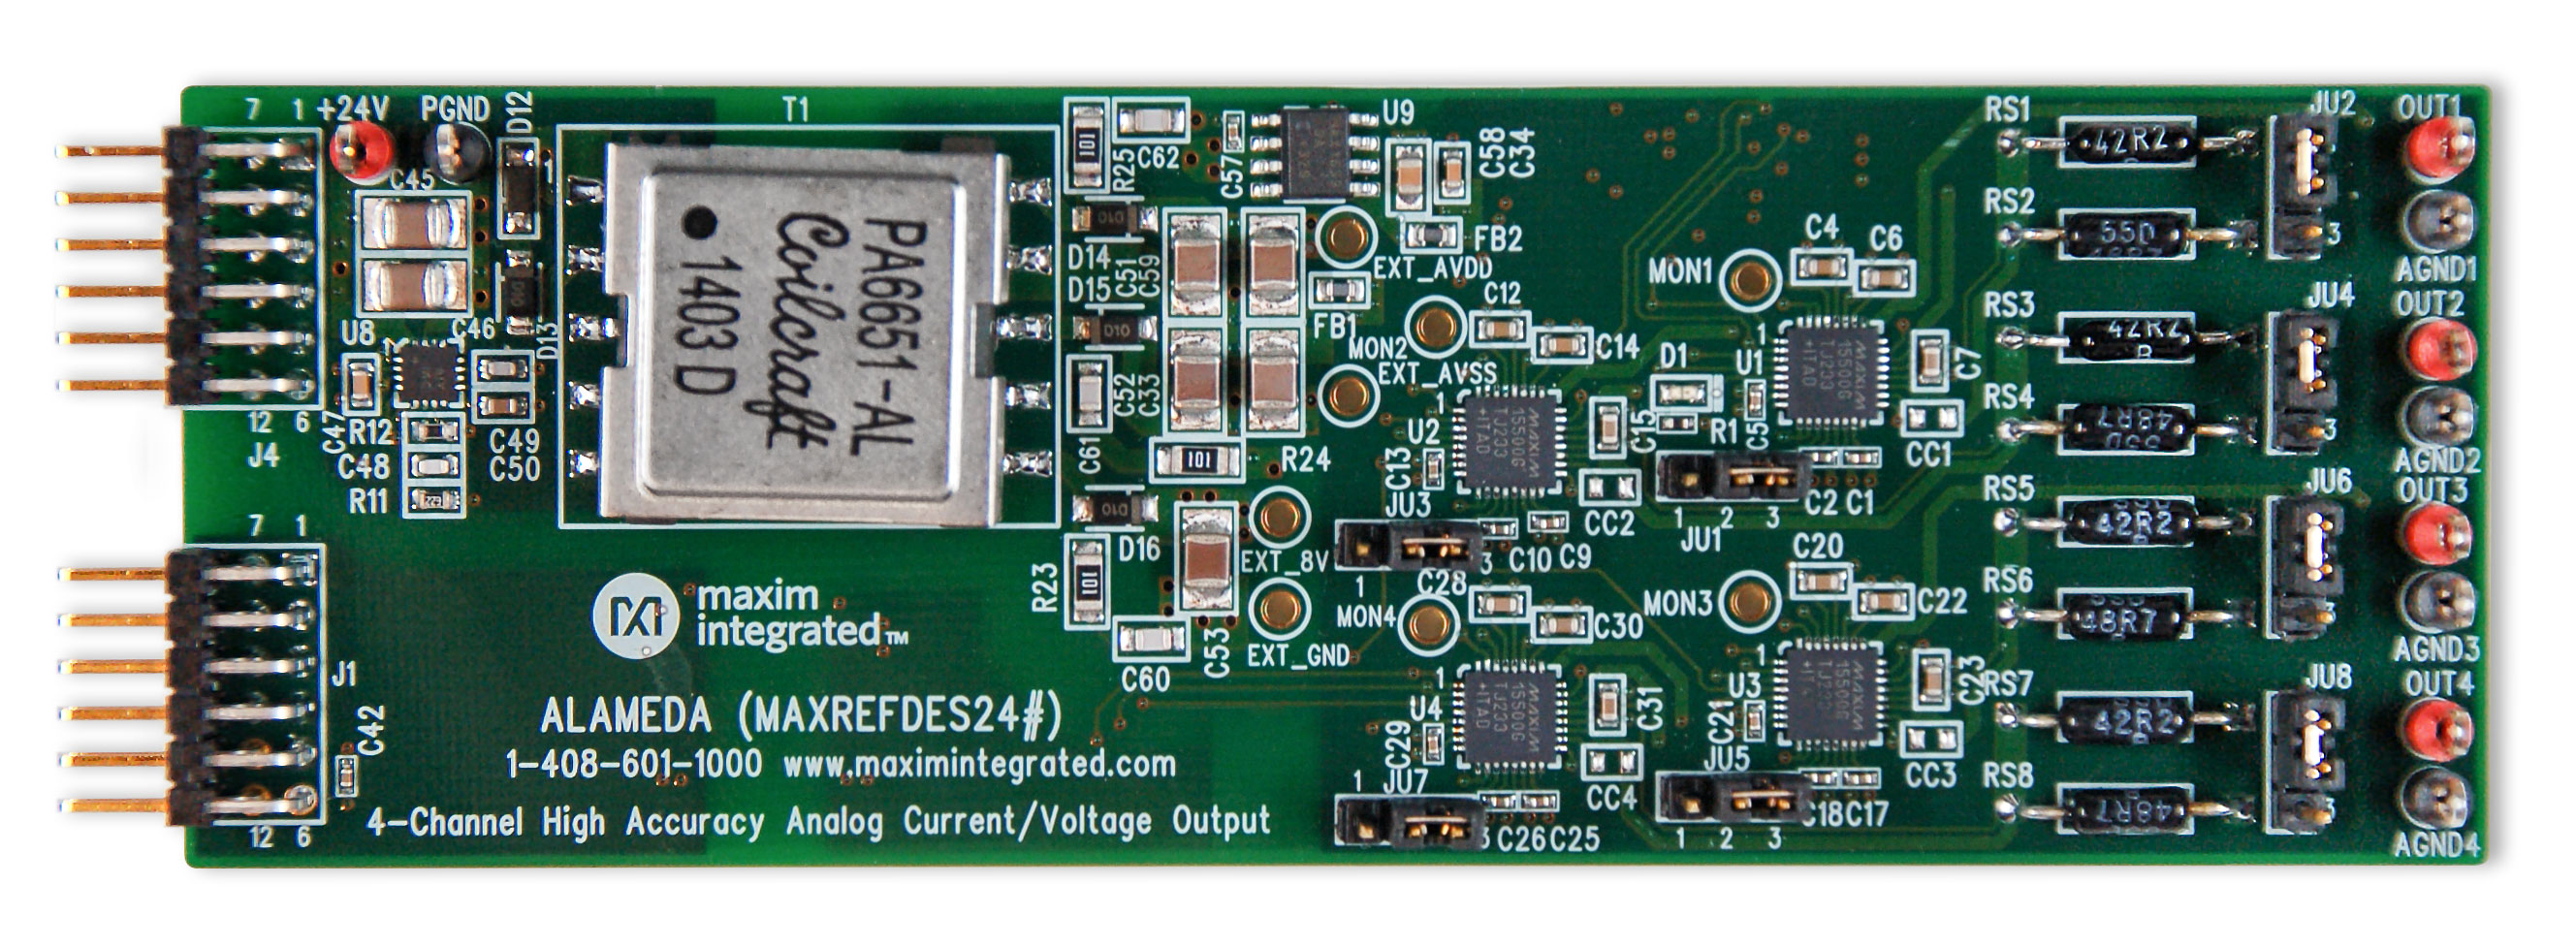 Alameda Maxrefdes24 4 Channel Analog Output Reference Figure 5 Overcurrent Detection Circuit For Pxnx 01a Rails In